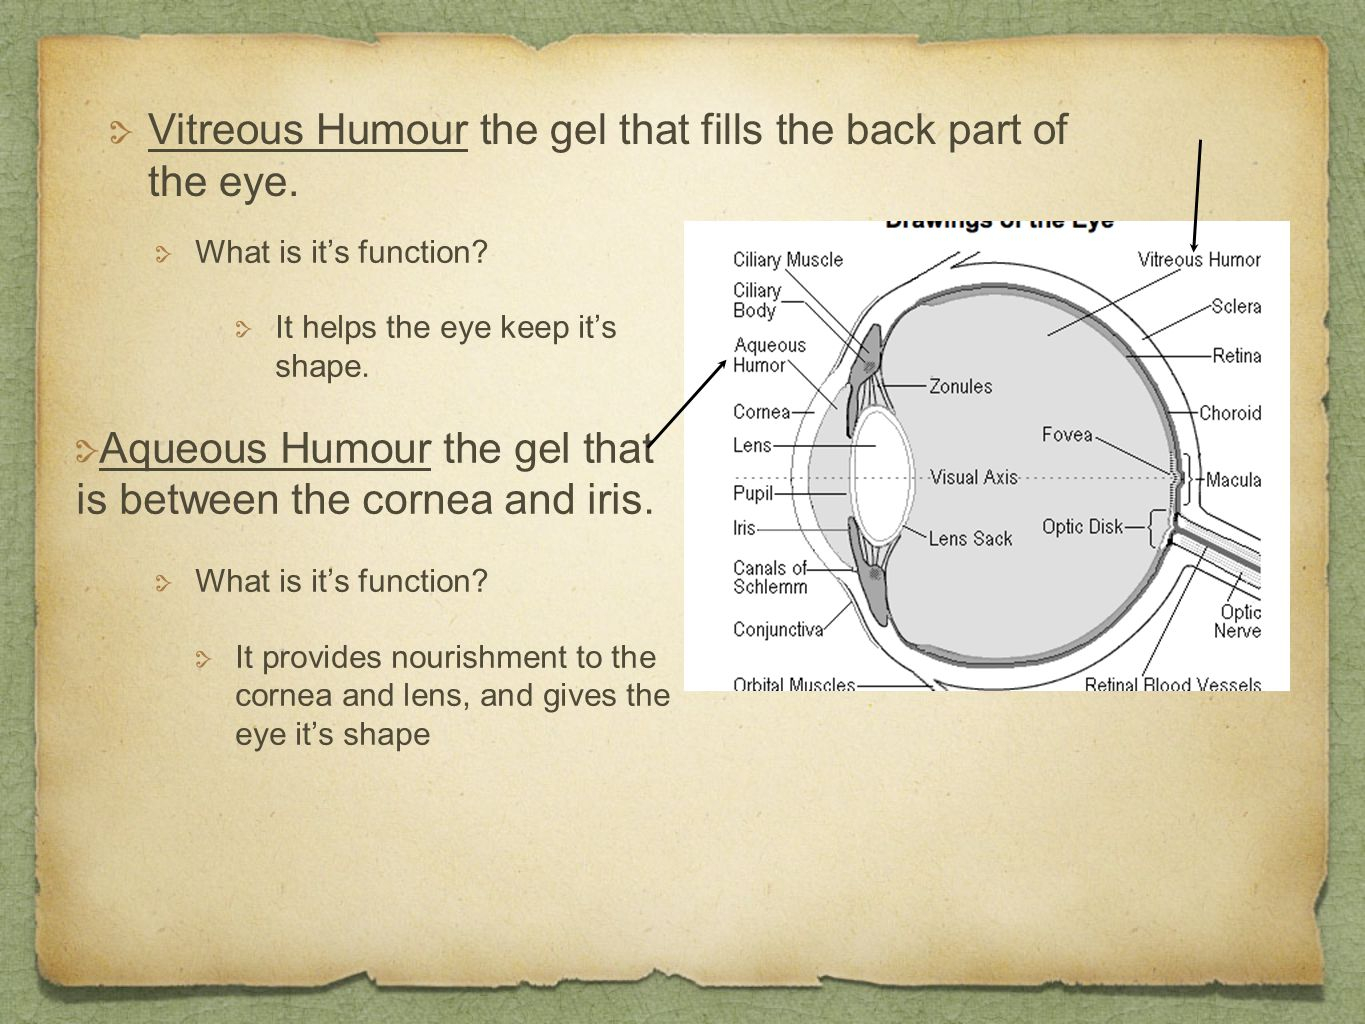 Vitreous Humour the gel that fills the back part of the eye.